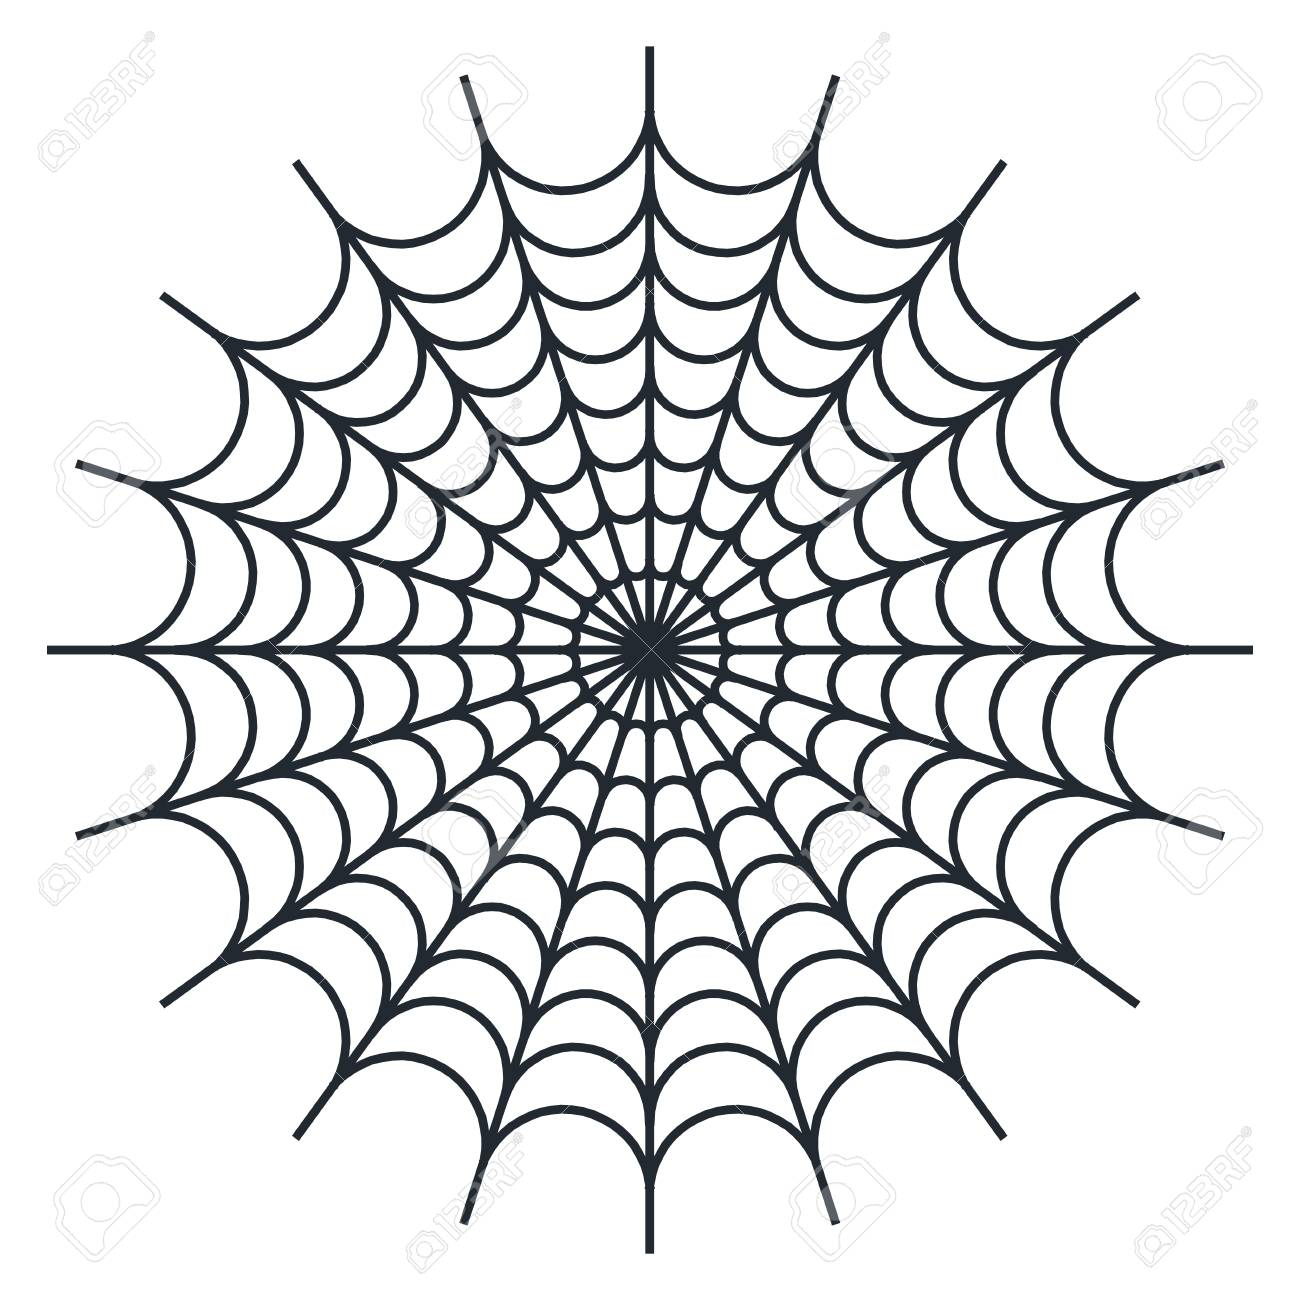 Spider Web Vector Illustration On White Background Royalty Free Cliparts Vectors And Stock Illustration Image 76182240